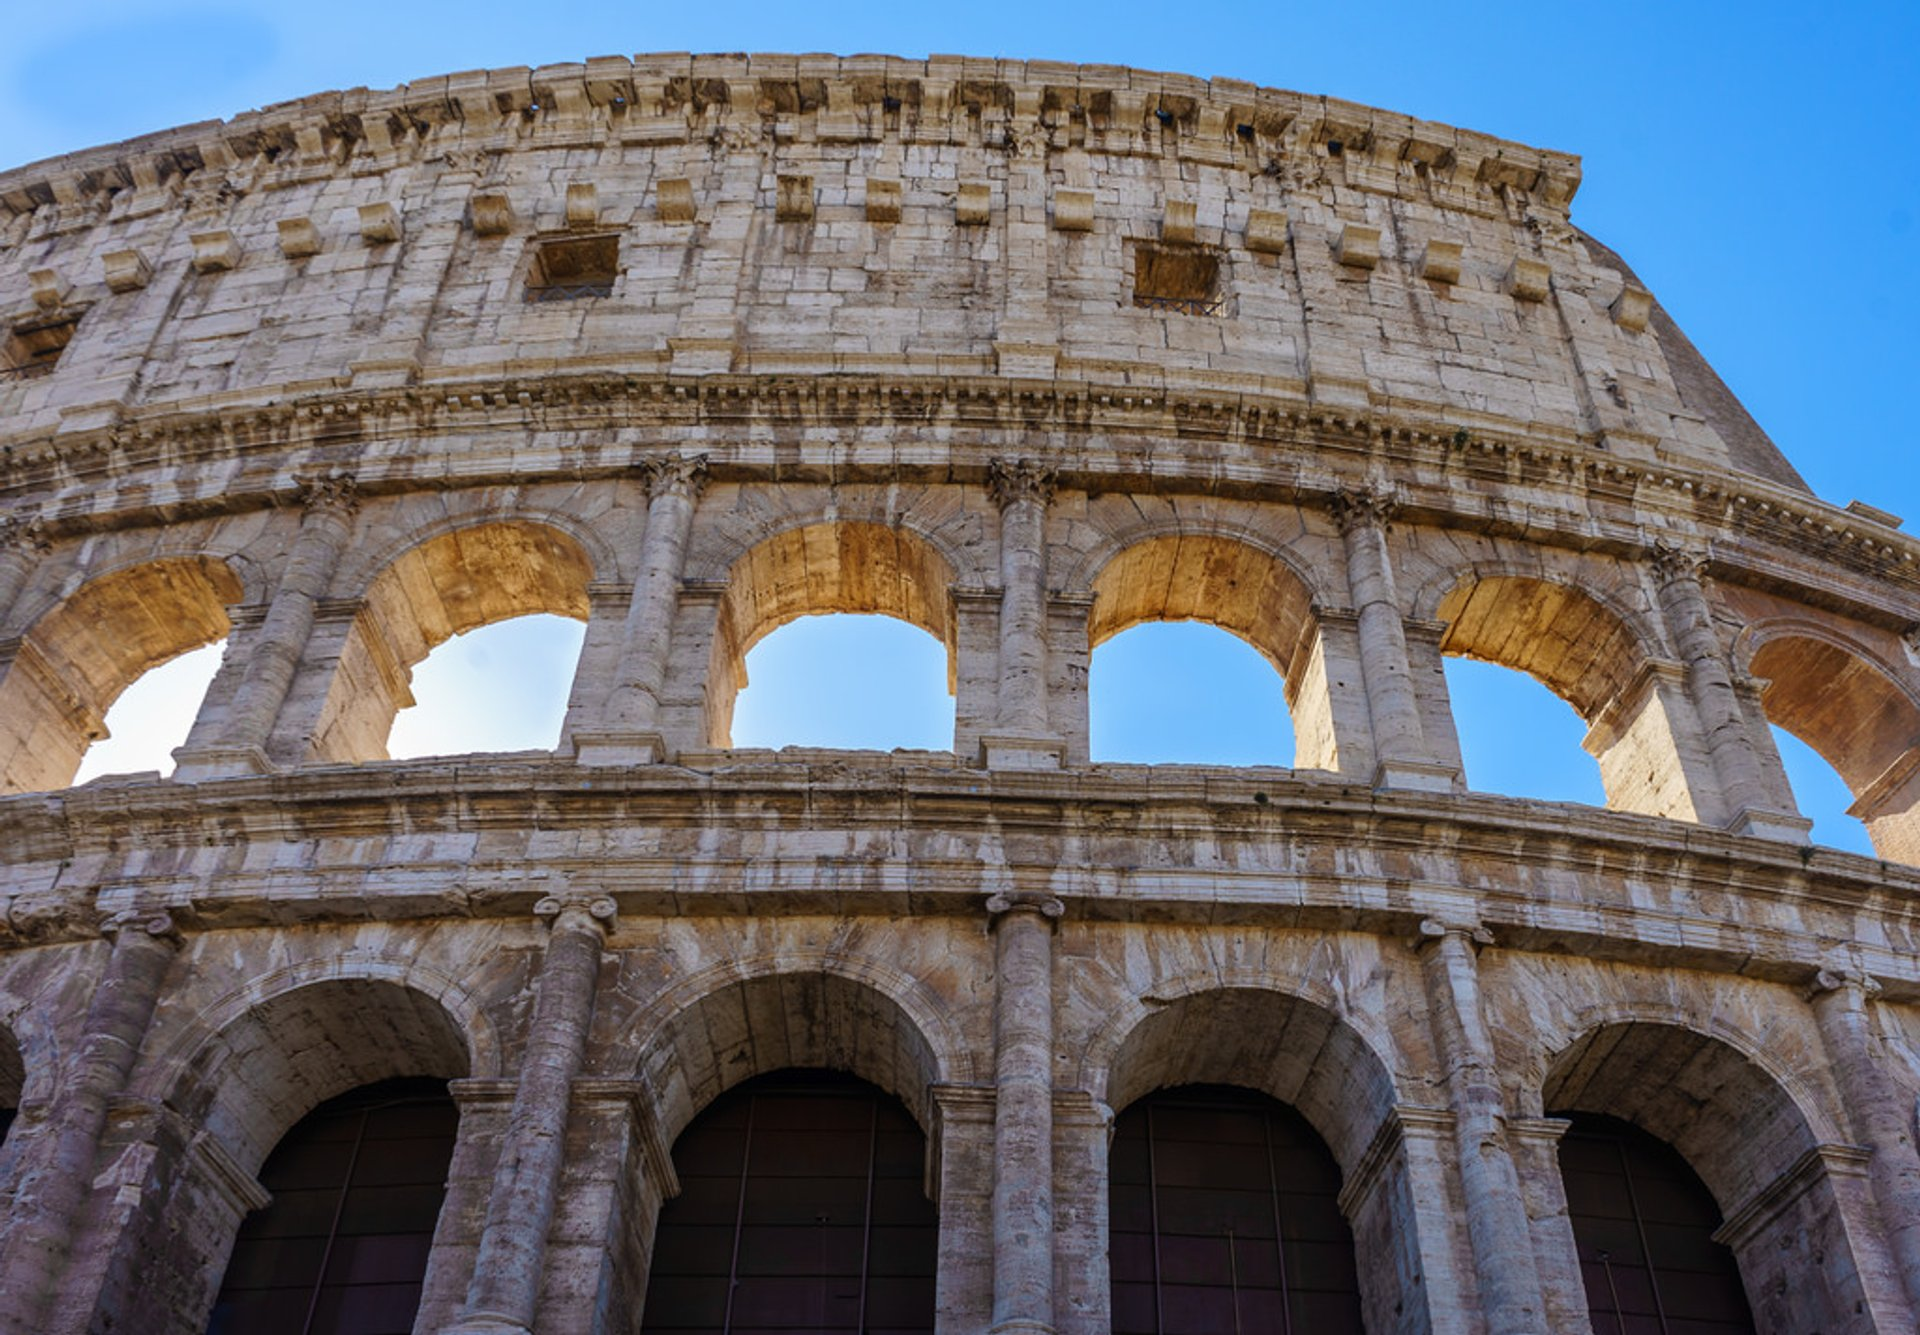 Best time to see Colosseum in Rome 2020